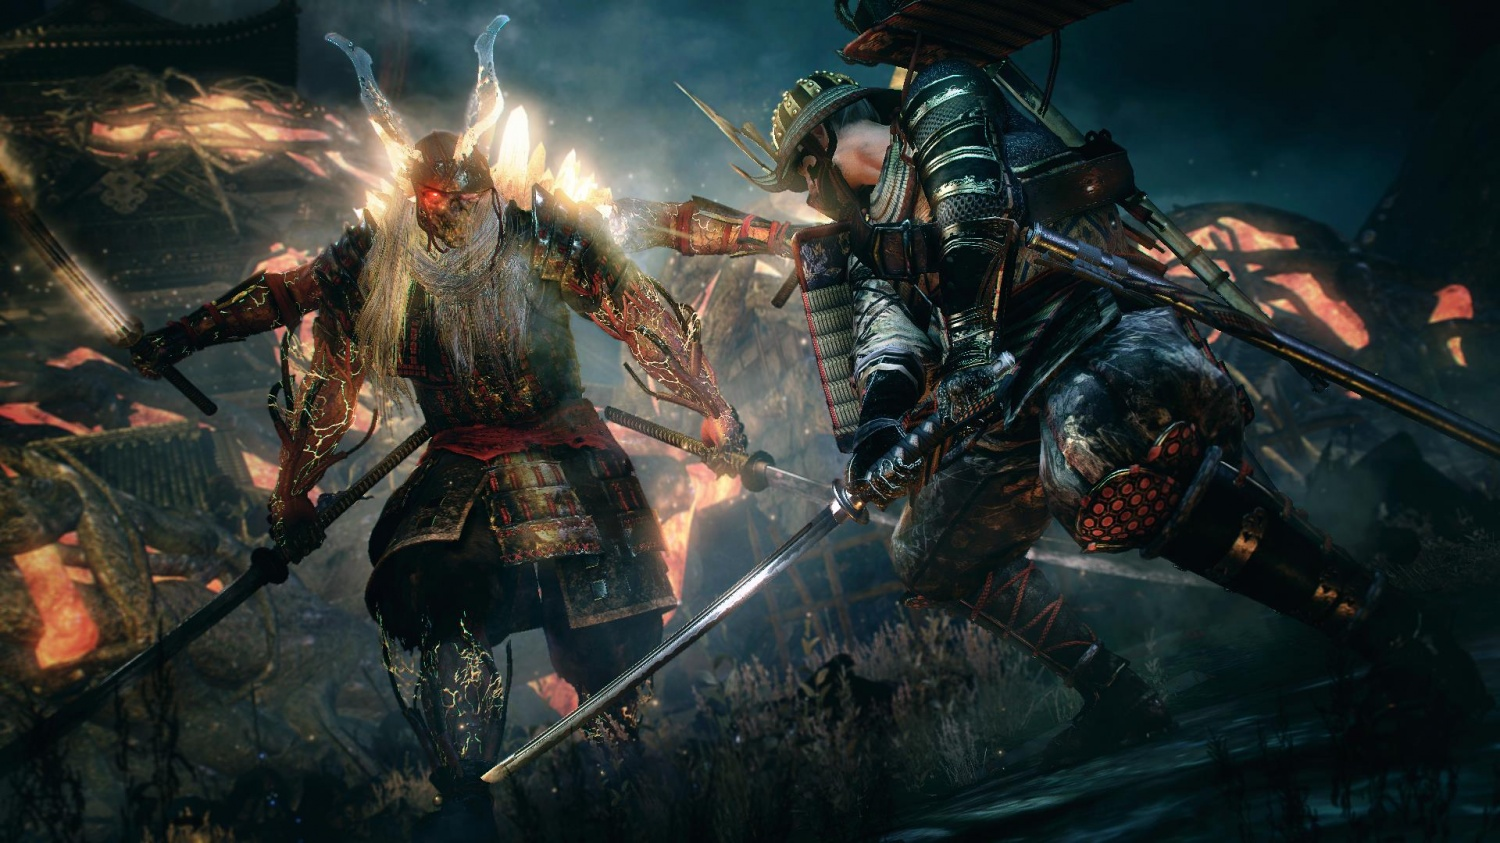 Nioh 2 Addresses Difficulty Concerns in Latest Update, Plus Tips for Both Old and New Players